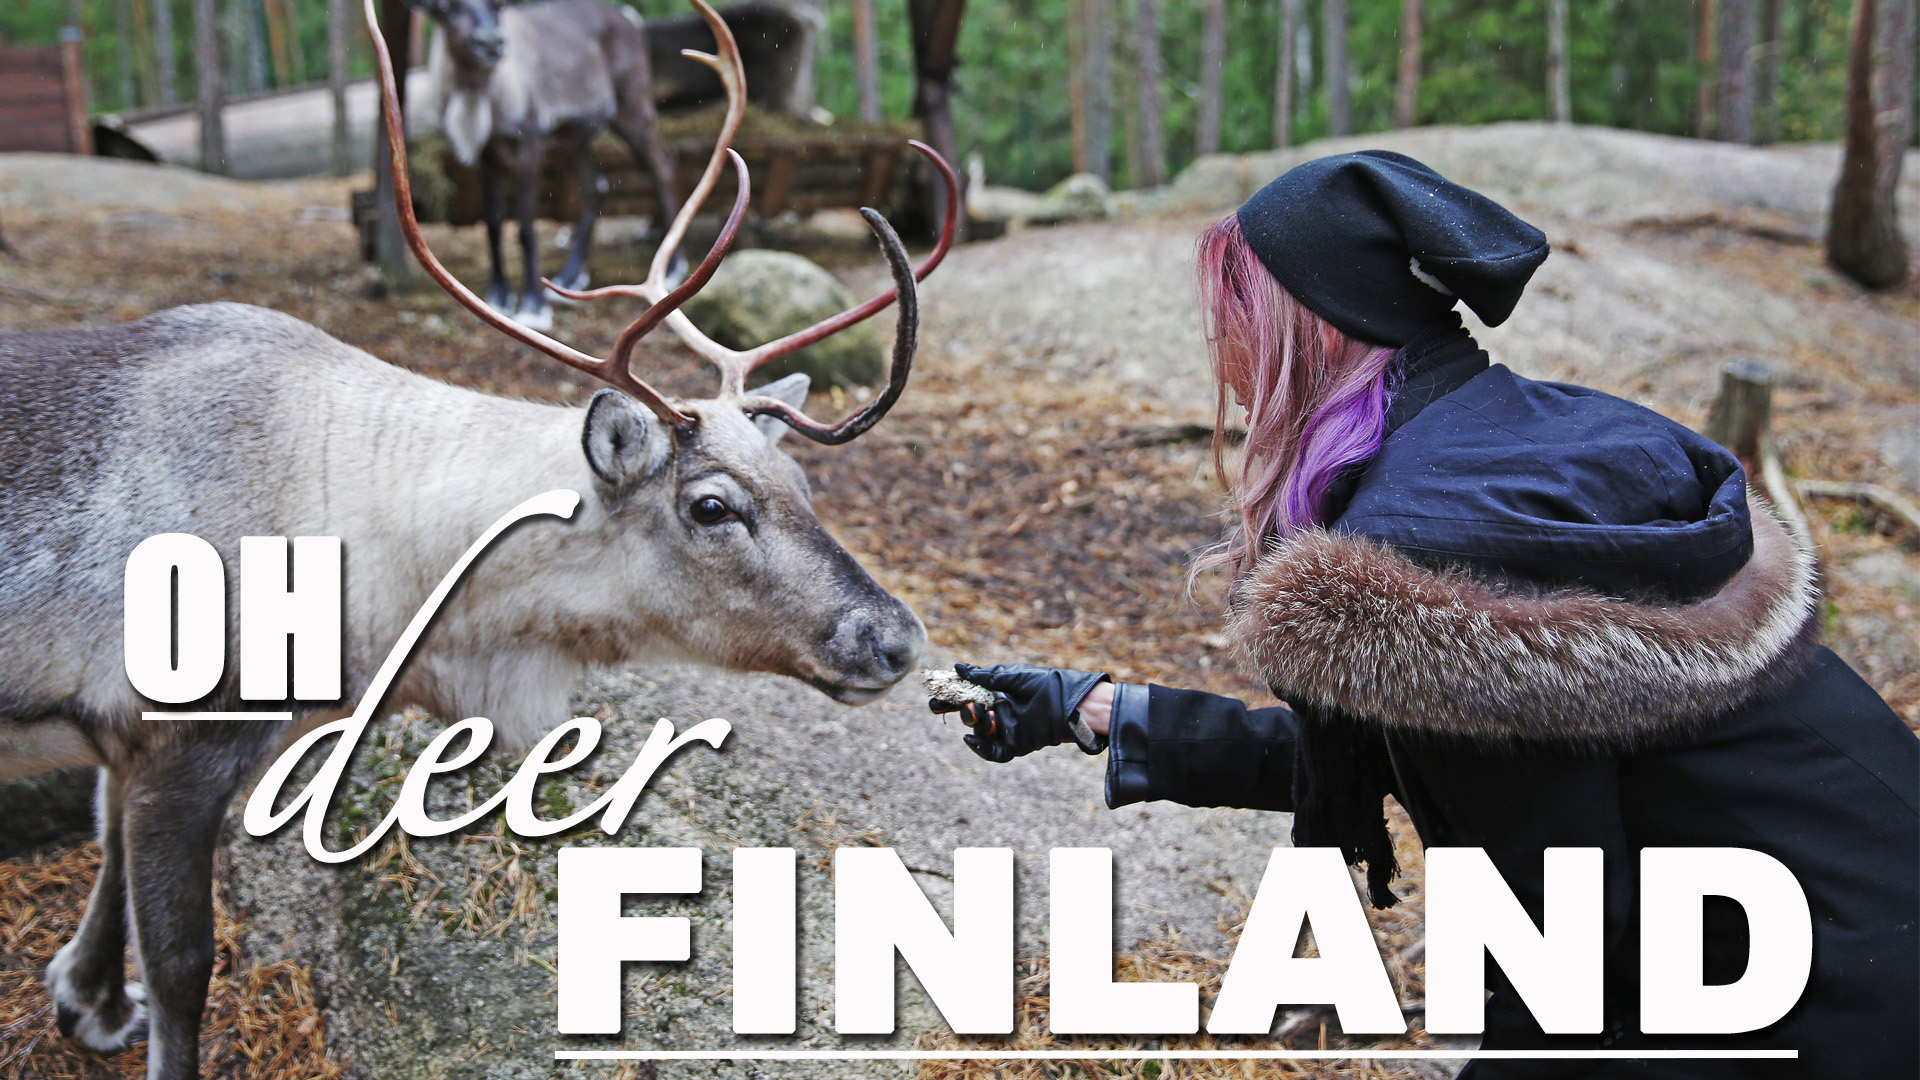 deer feeding in finland - camille co